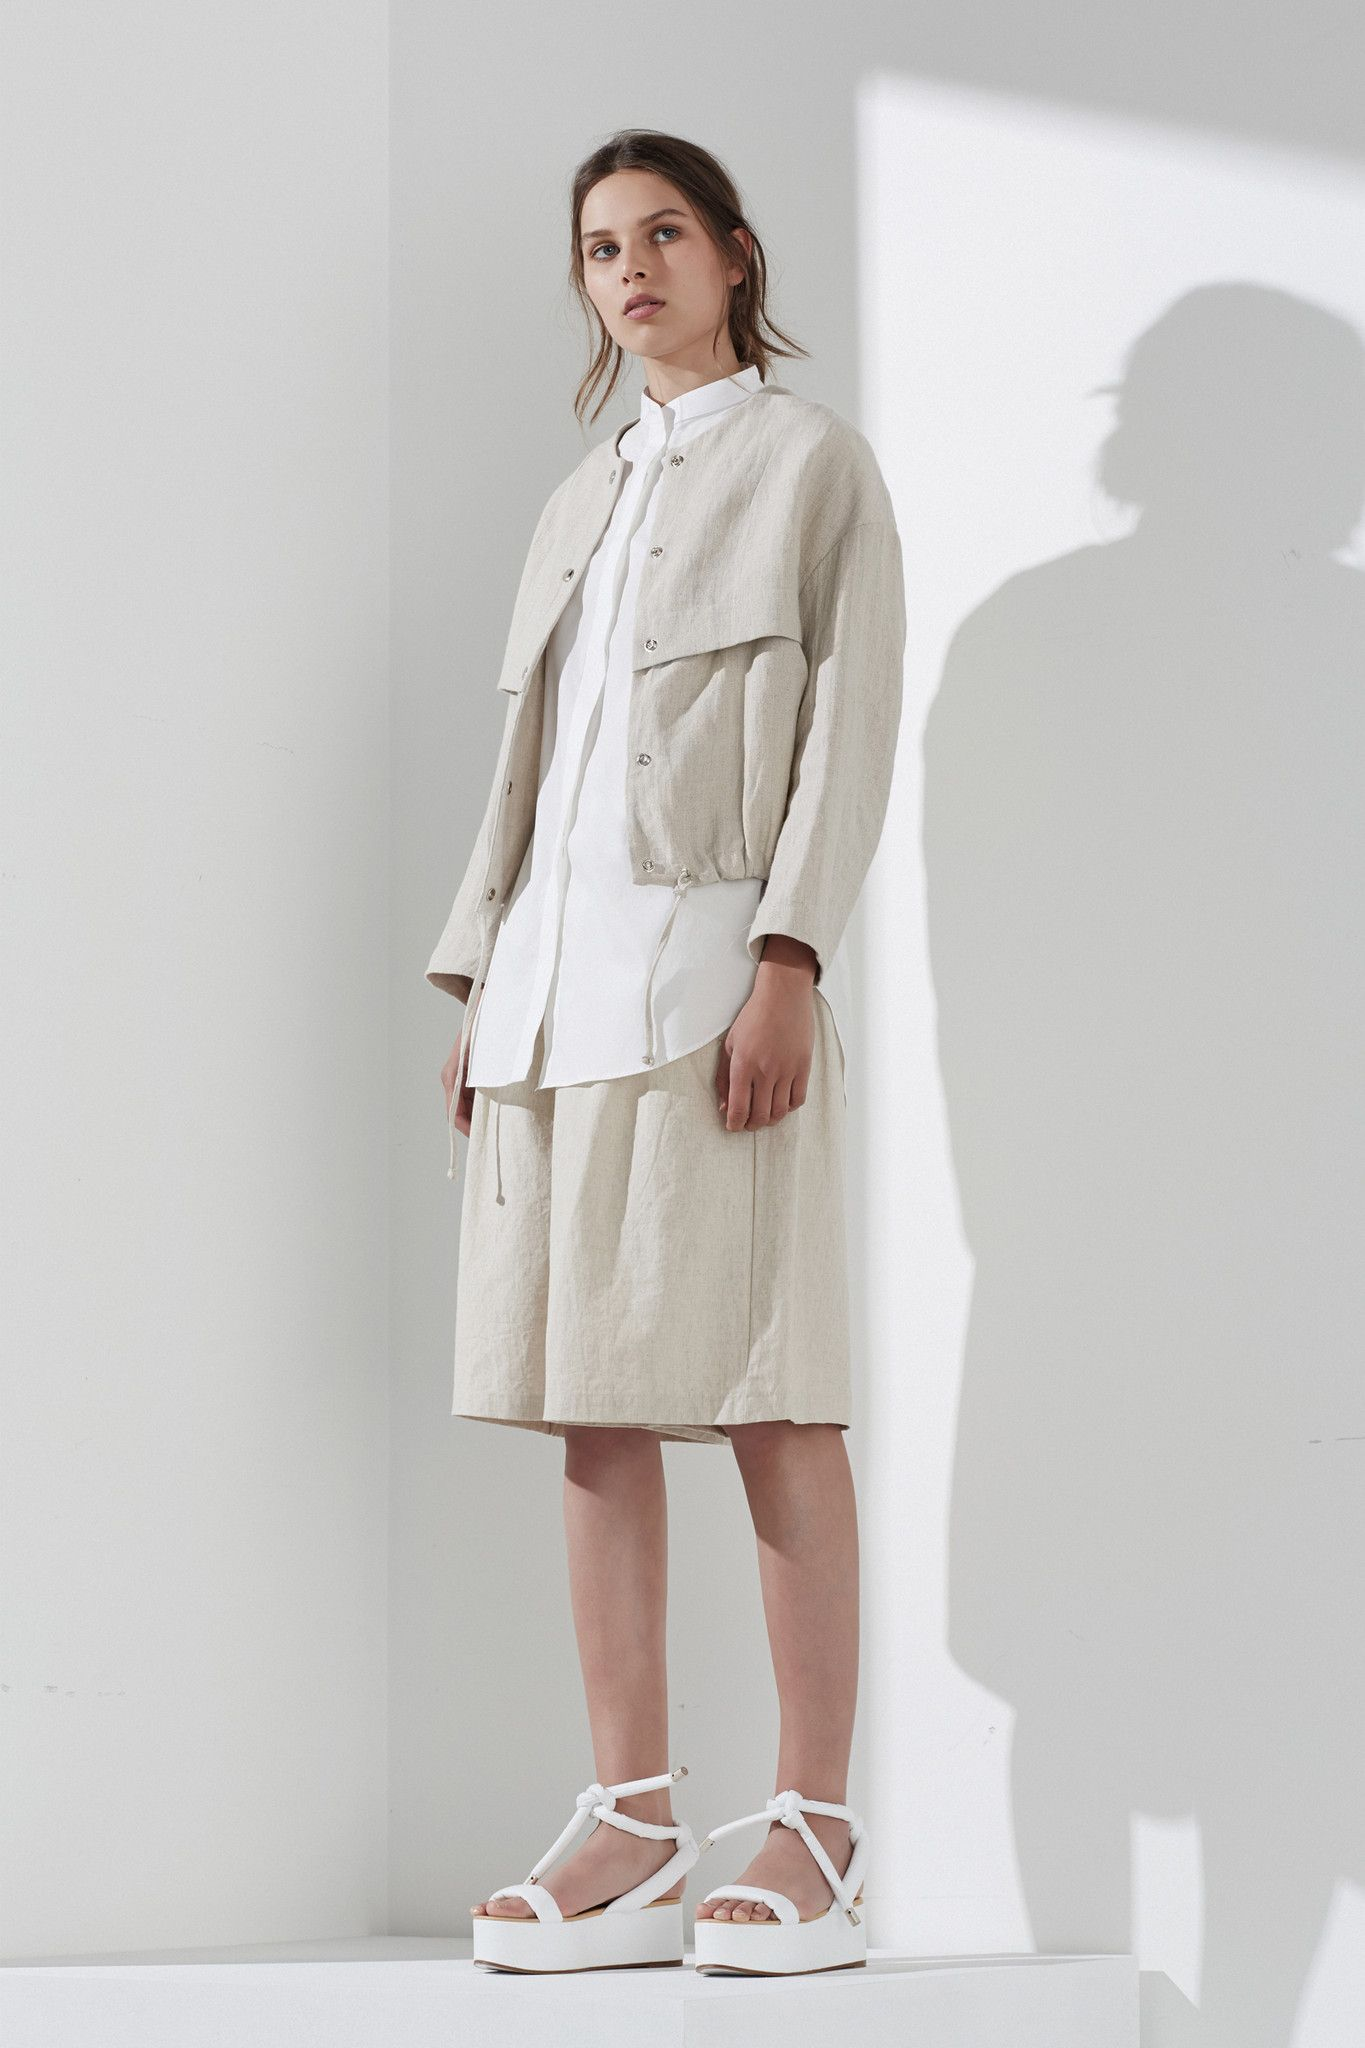 GOOD SPORT SS16 WOMEN – Kloke